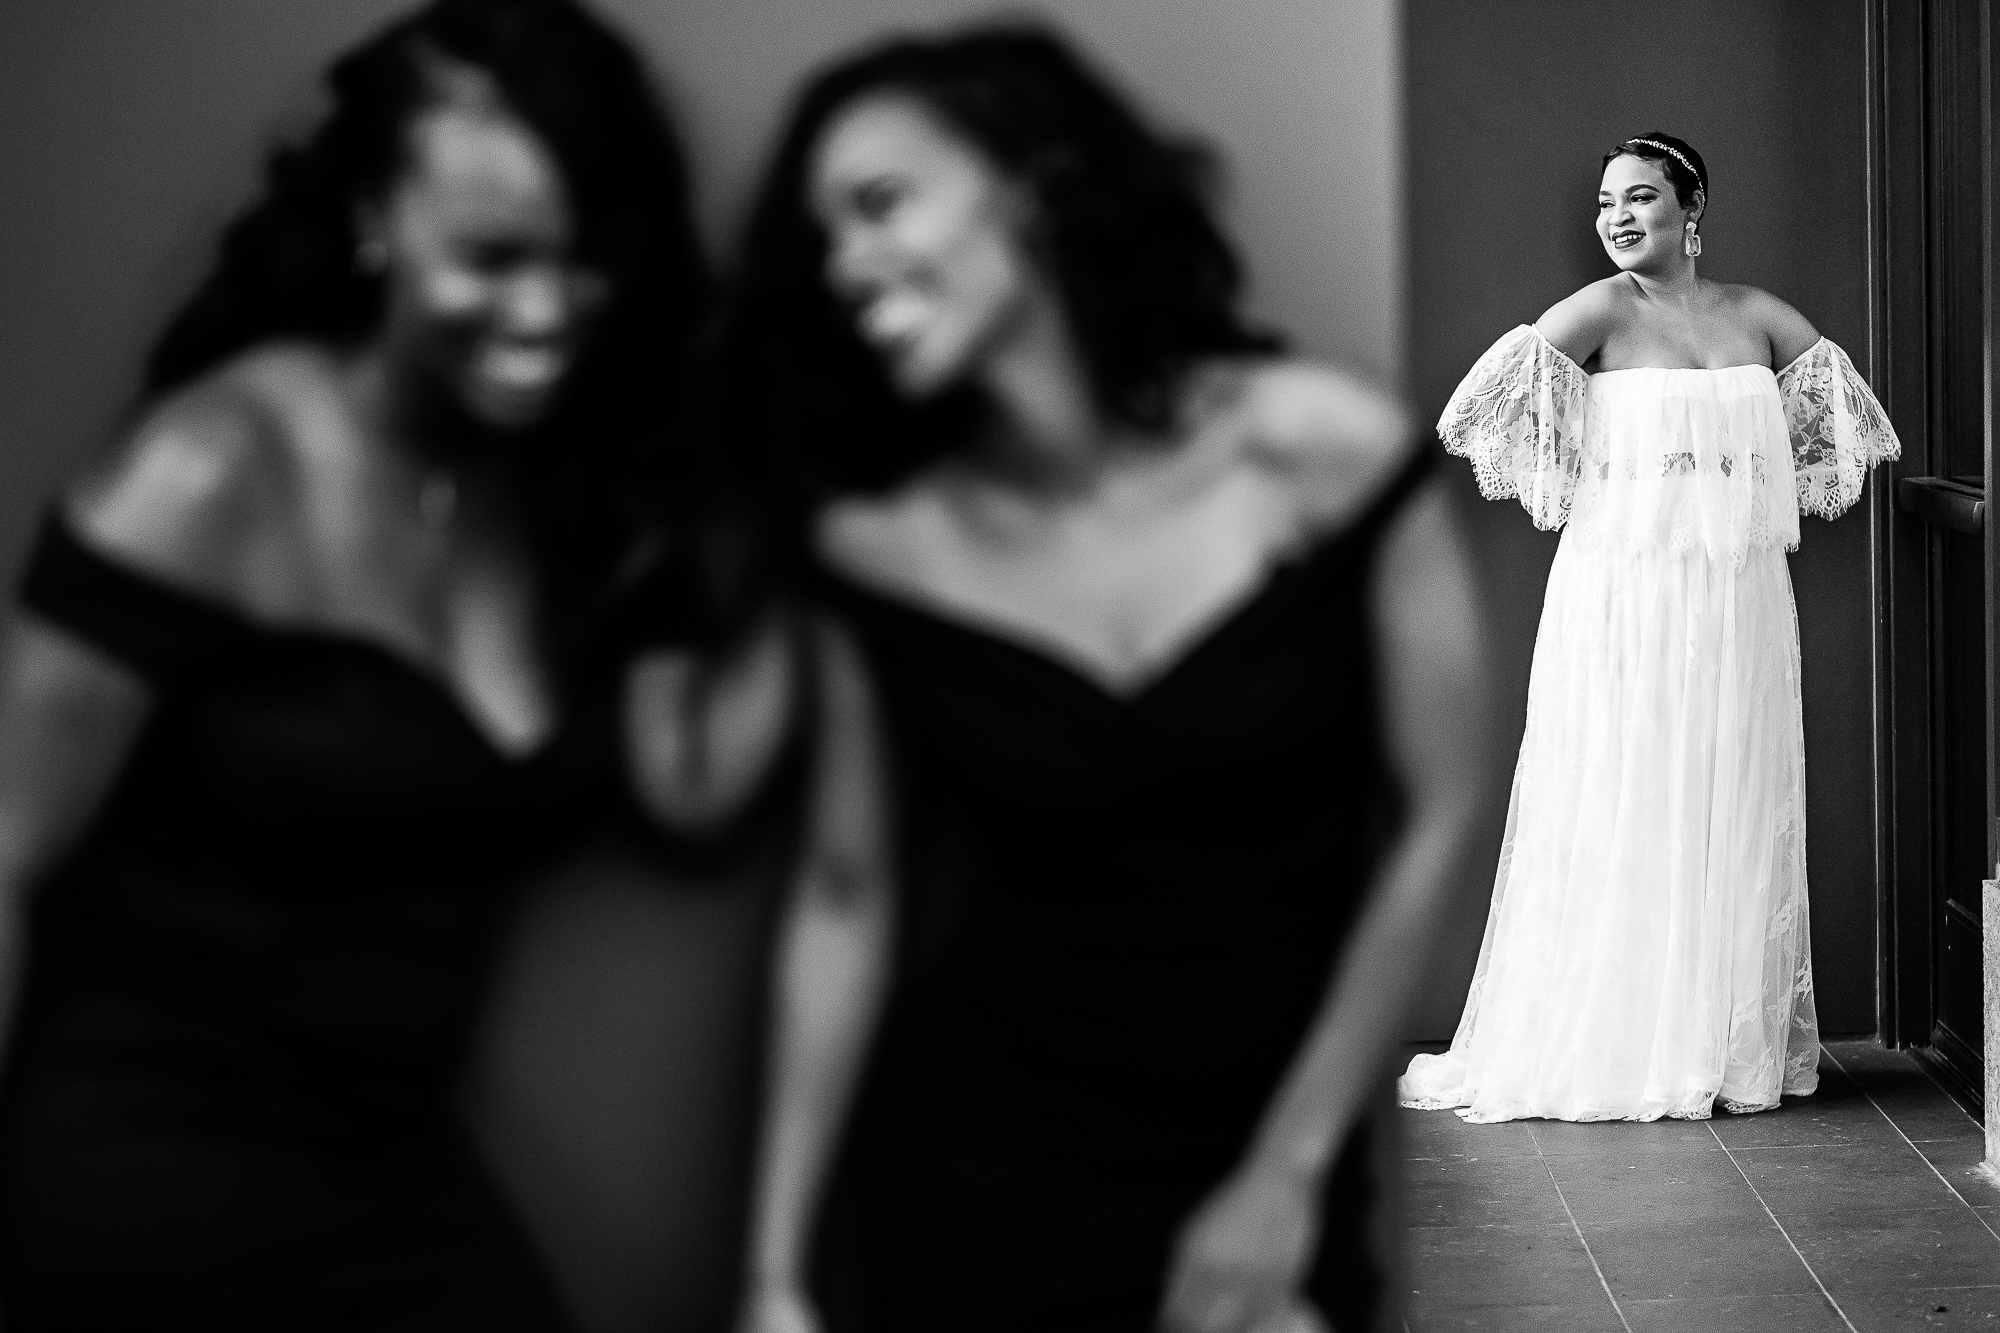 bridemaids-laugh-in-foreground-while-bride-in-lace-dress-has-her-portrait-taken-christopher-jason-studios